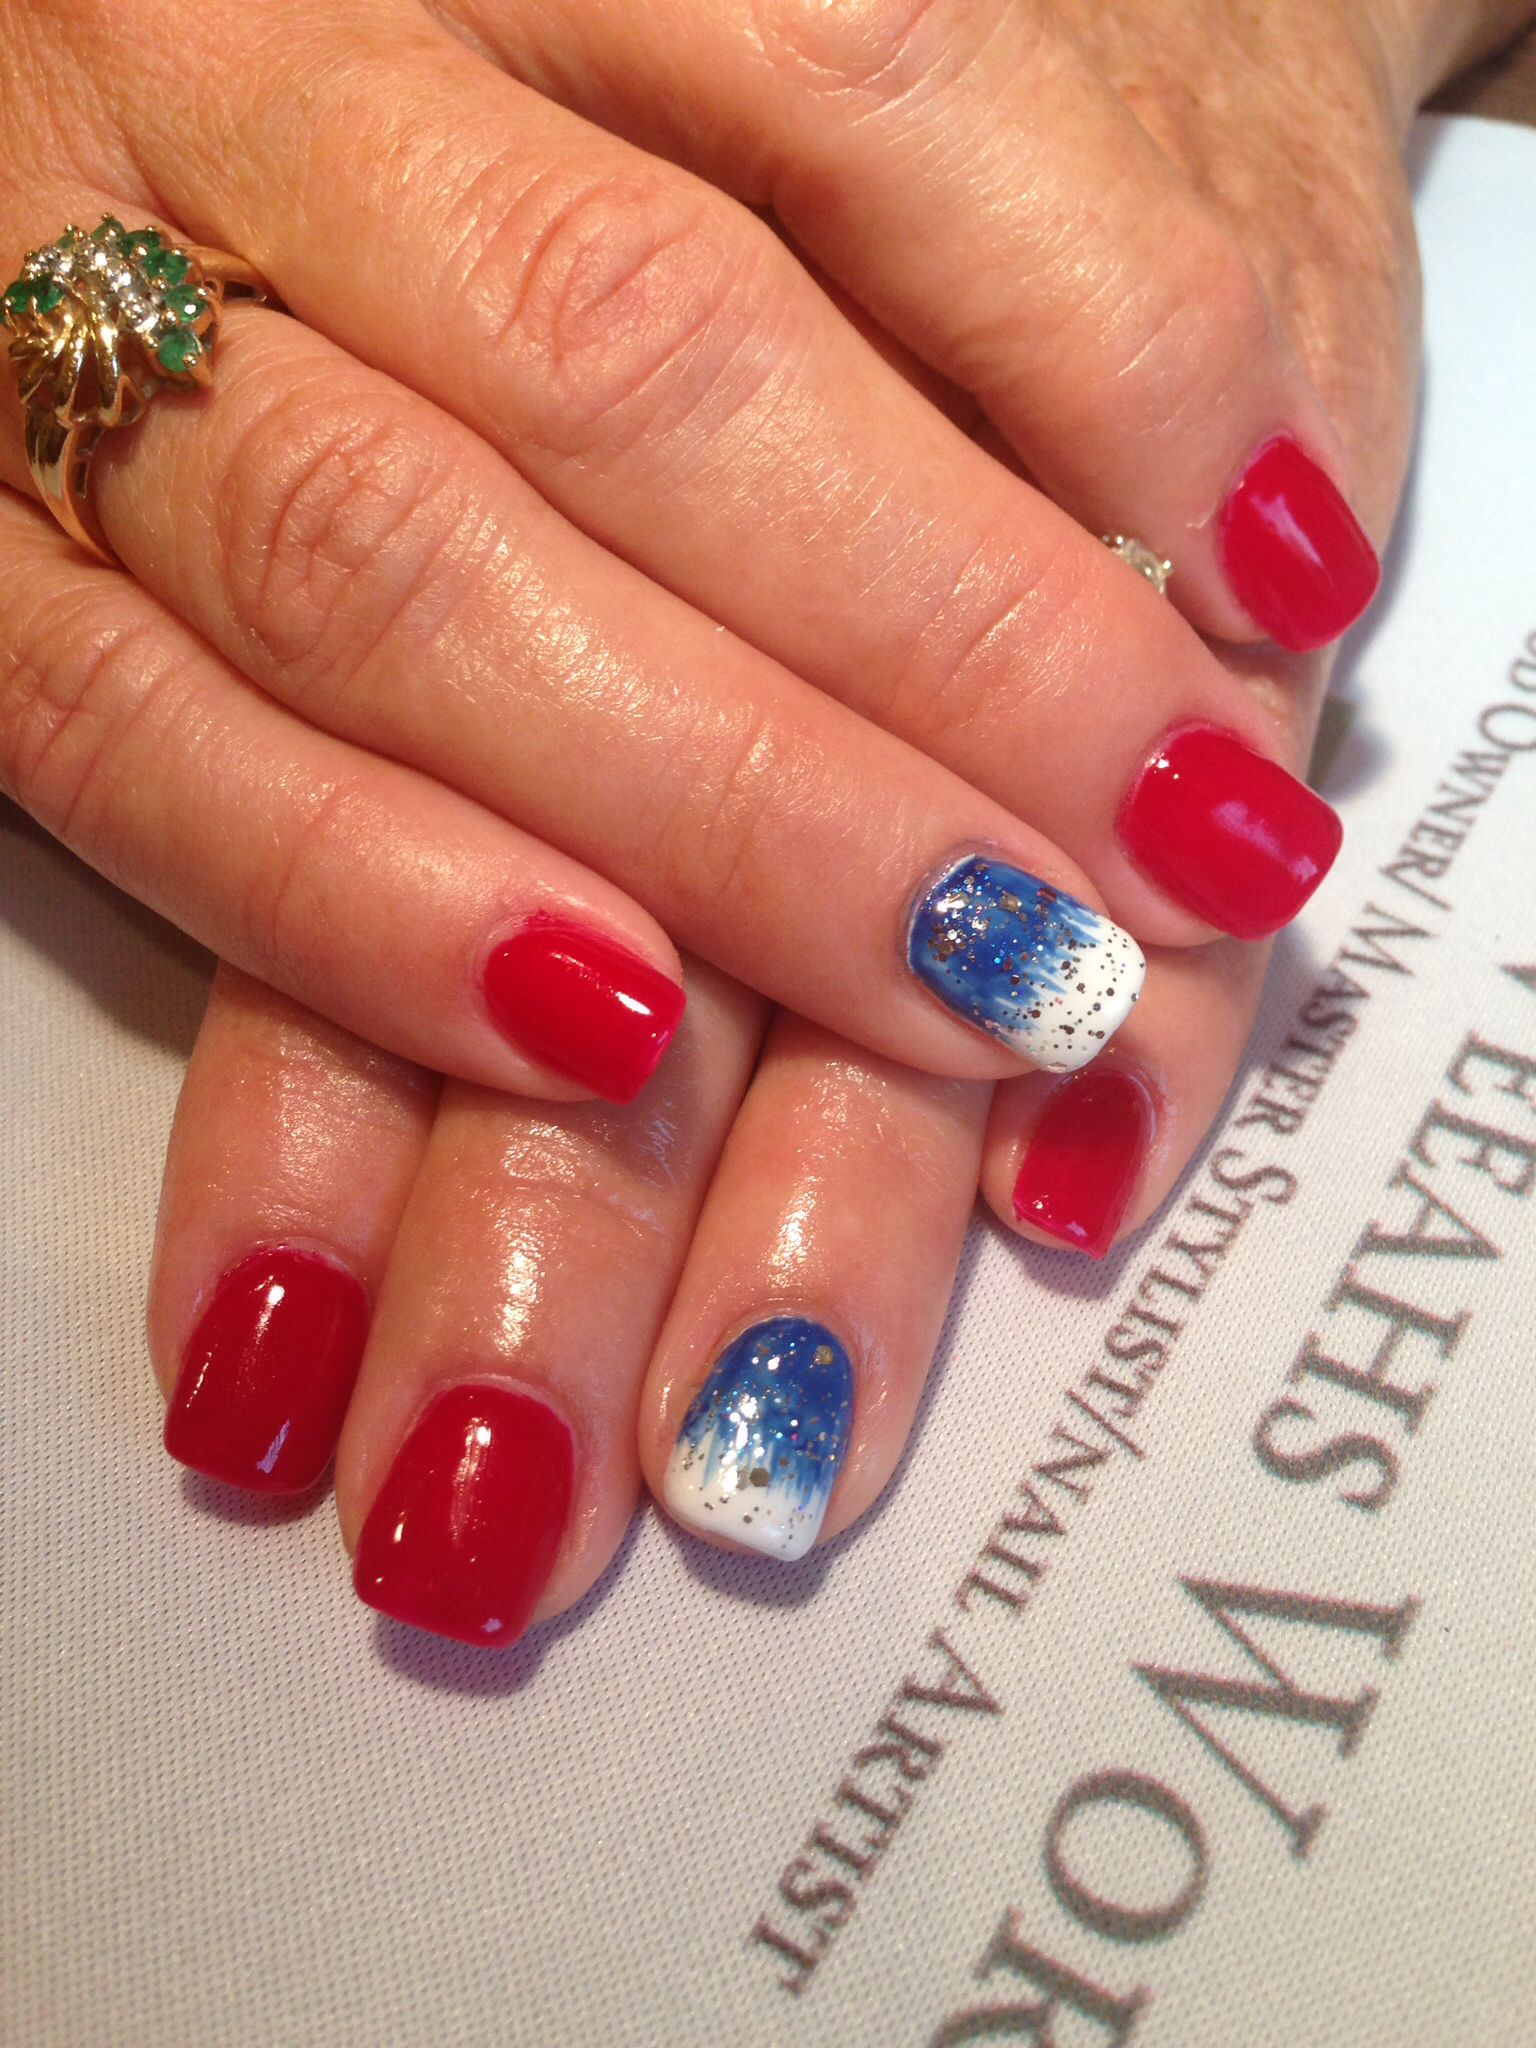 Red white and blue by Veeah #gelish